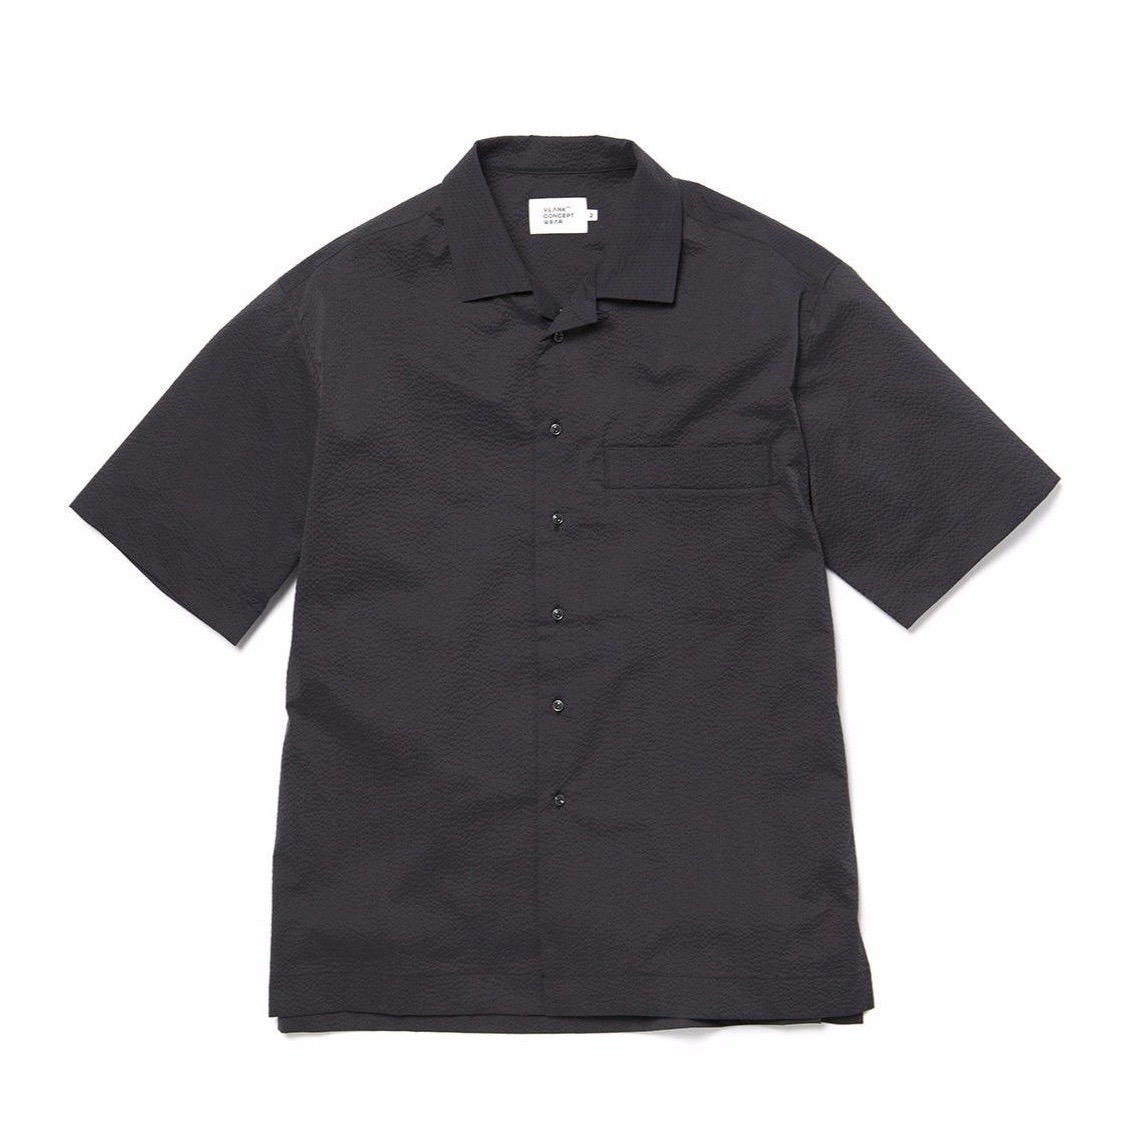 VLANK CONCEPT WEAR BOX SHORT SLEEVE SHIRT